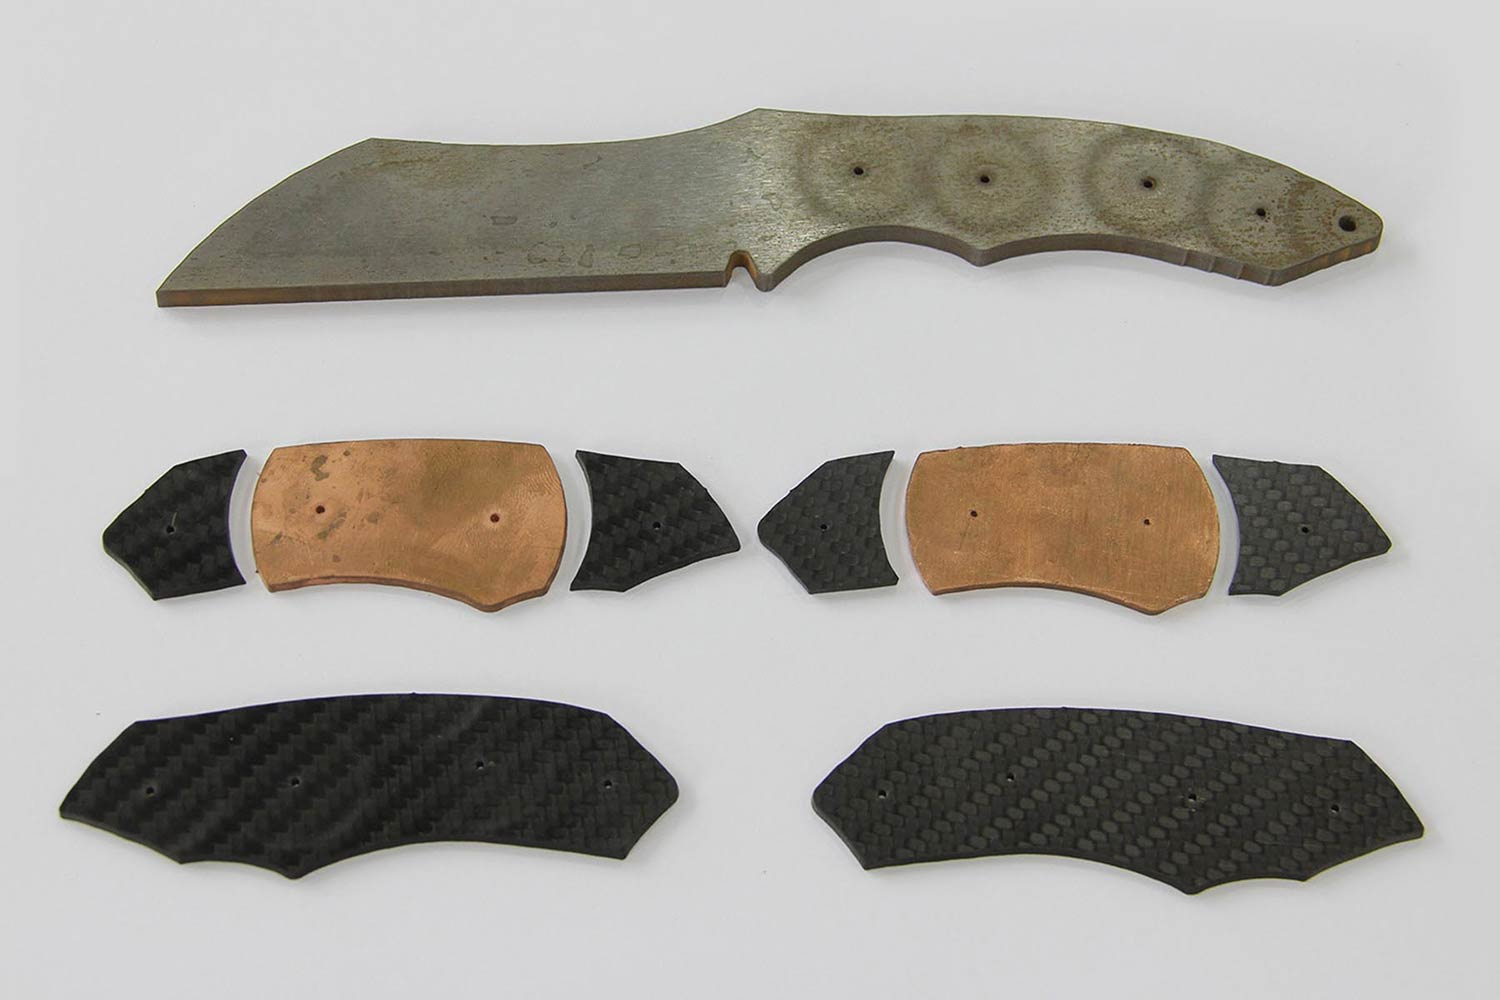 The knife was made from 4mm-thick D2 tool-steel and the handle from a combination of 2mm copper and carbon fiber sheets. In total the project involved 1 hour 58 minutes of cut time on WAZER a consumed 39 pounds (18kg) of abrasive.